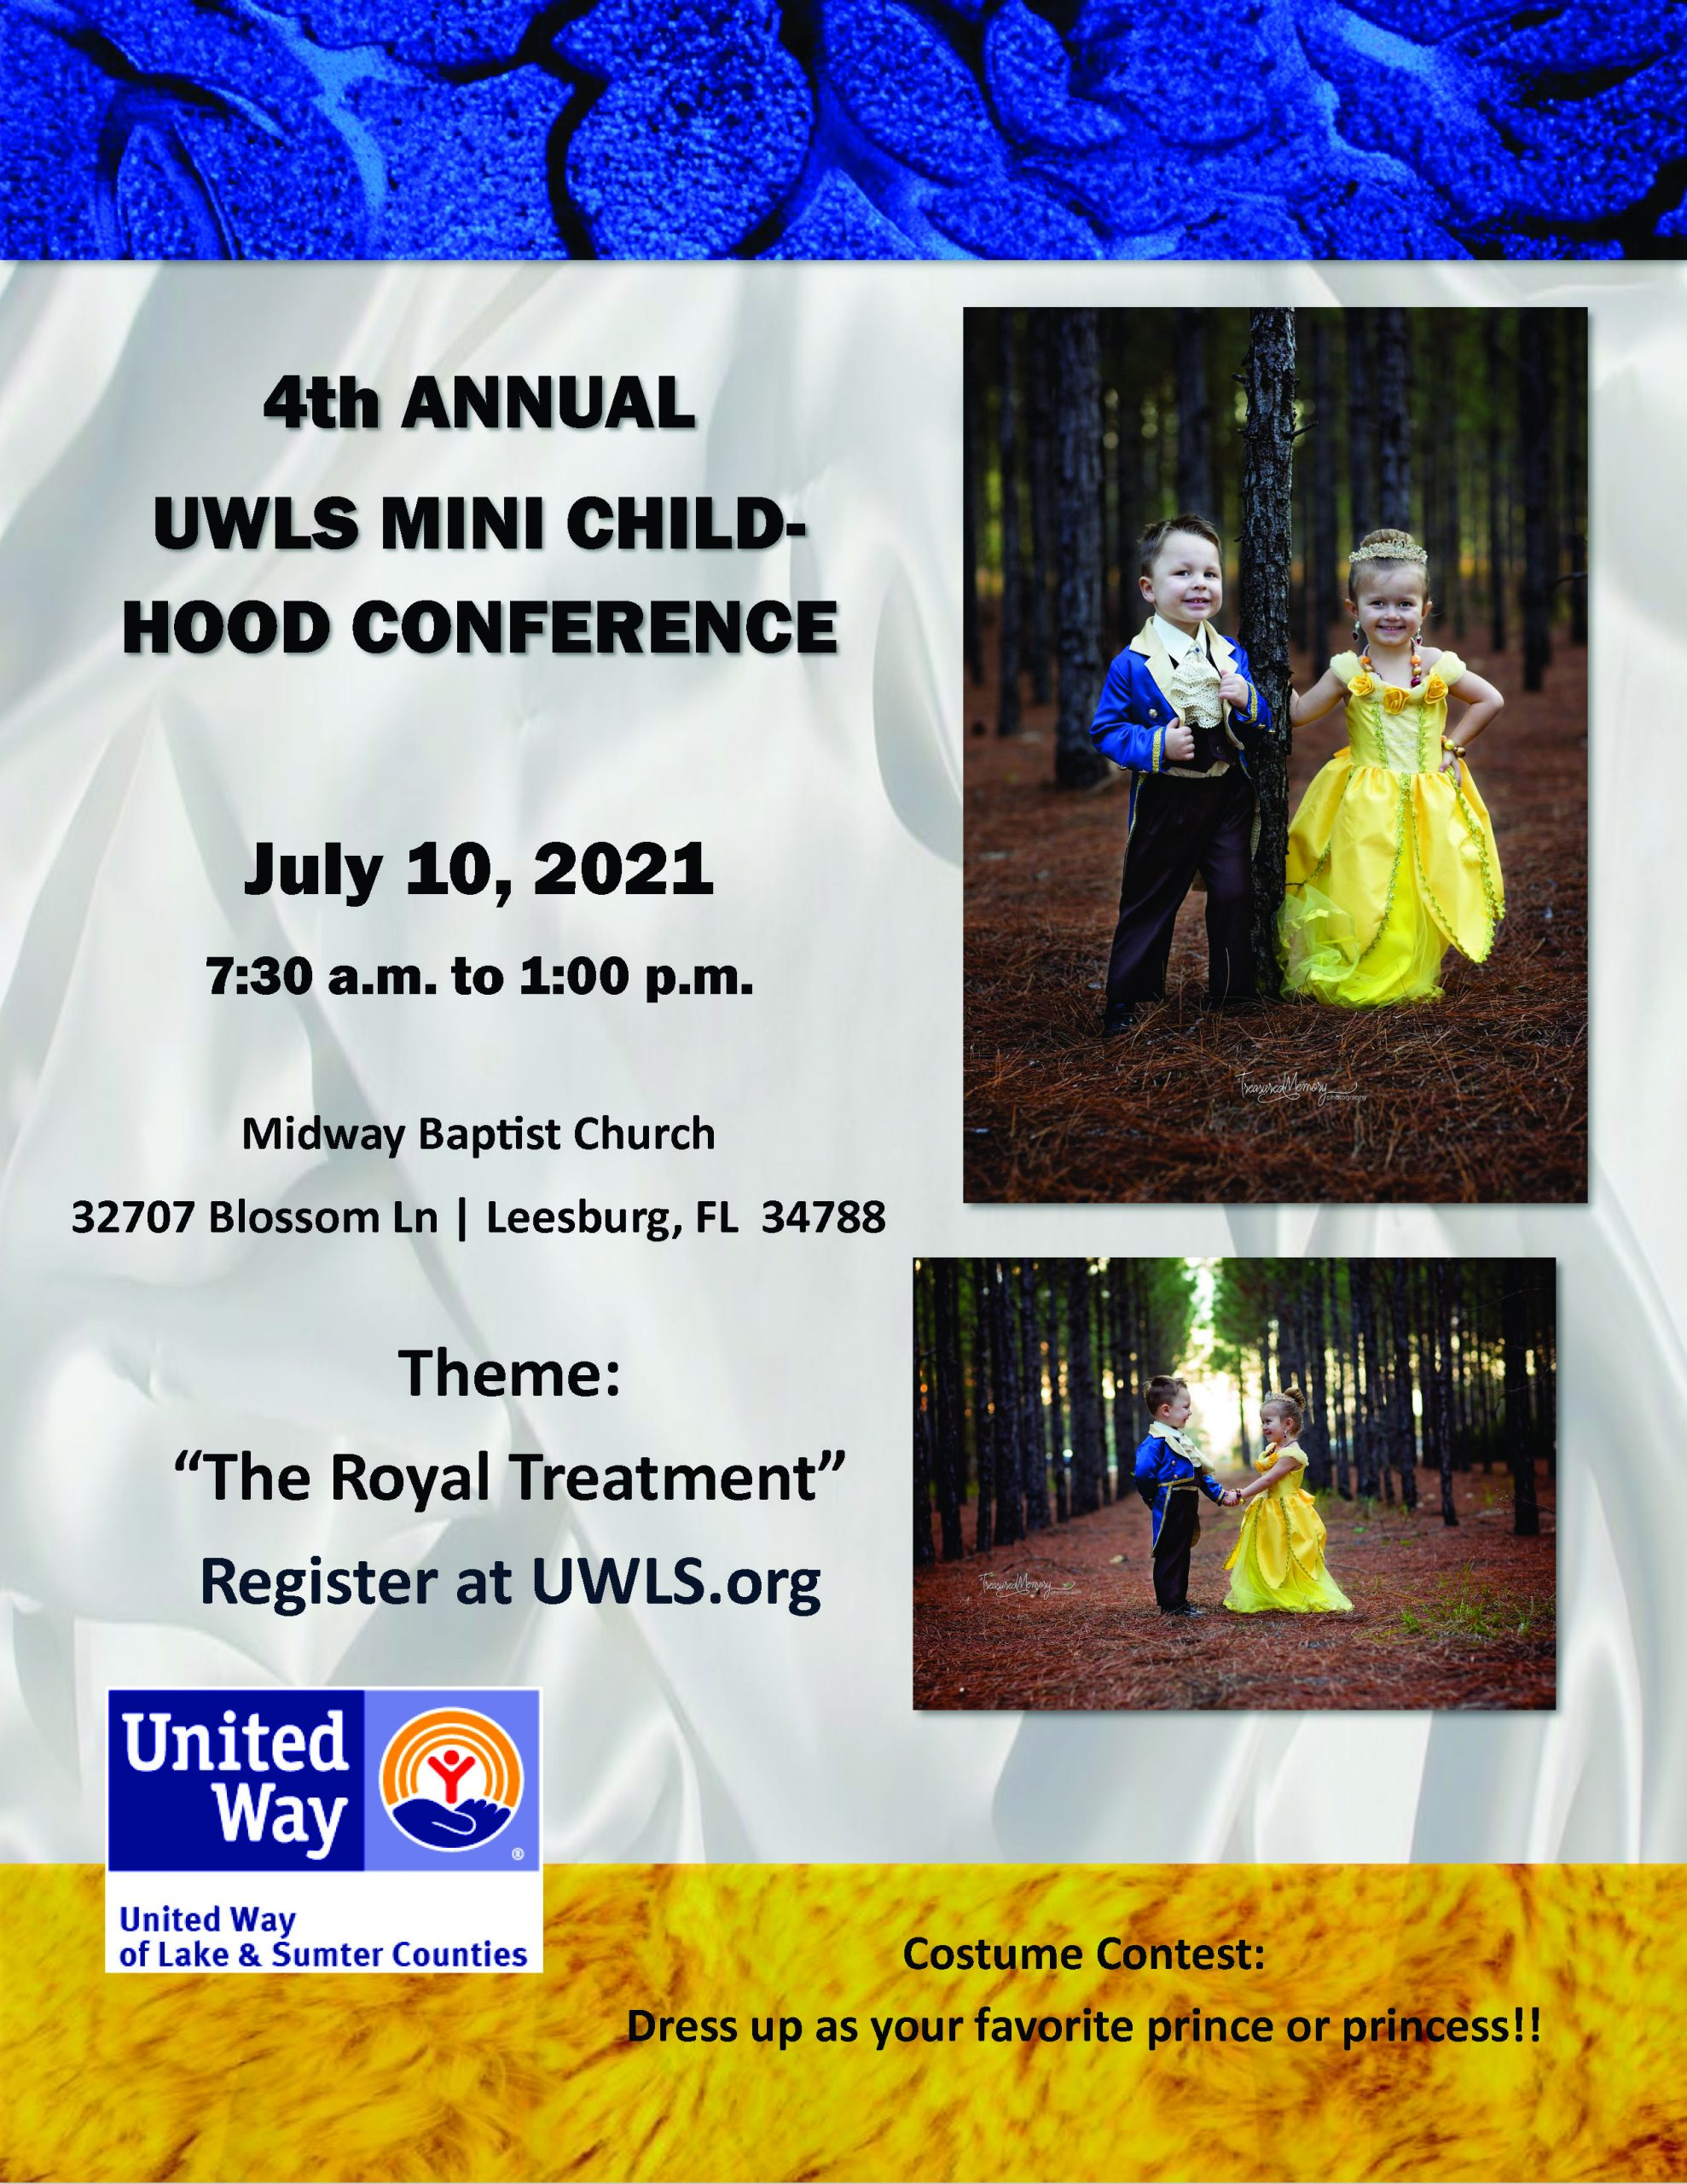 4th ANNUAL UWLS MINI CHILD-HOOD CONFERENCE July 10, 2021 7:30 a.m. to 1:00 p.m.